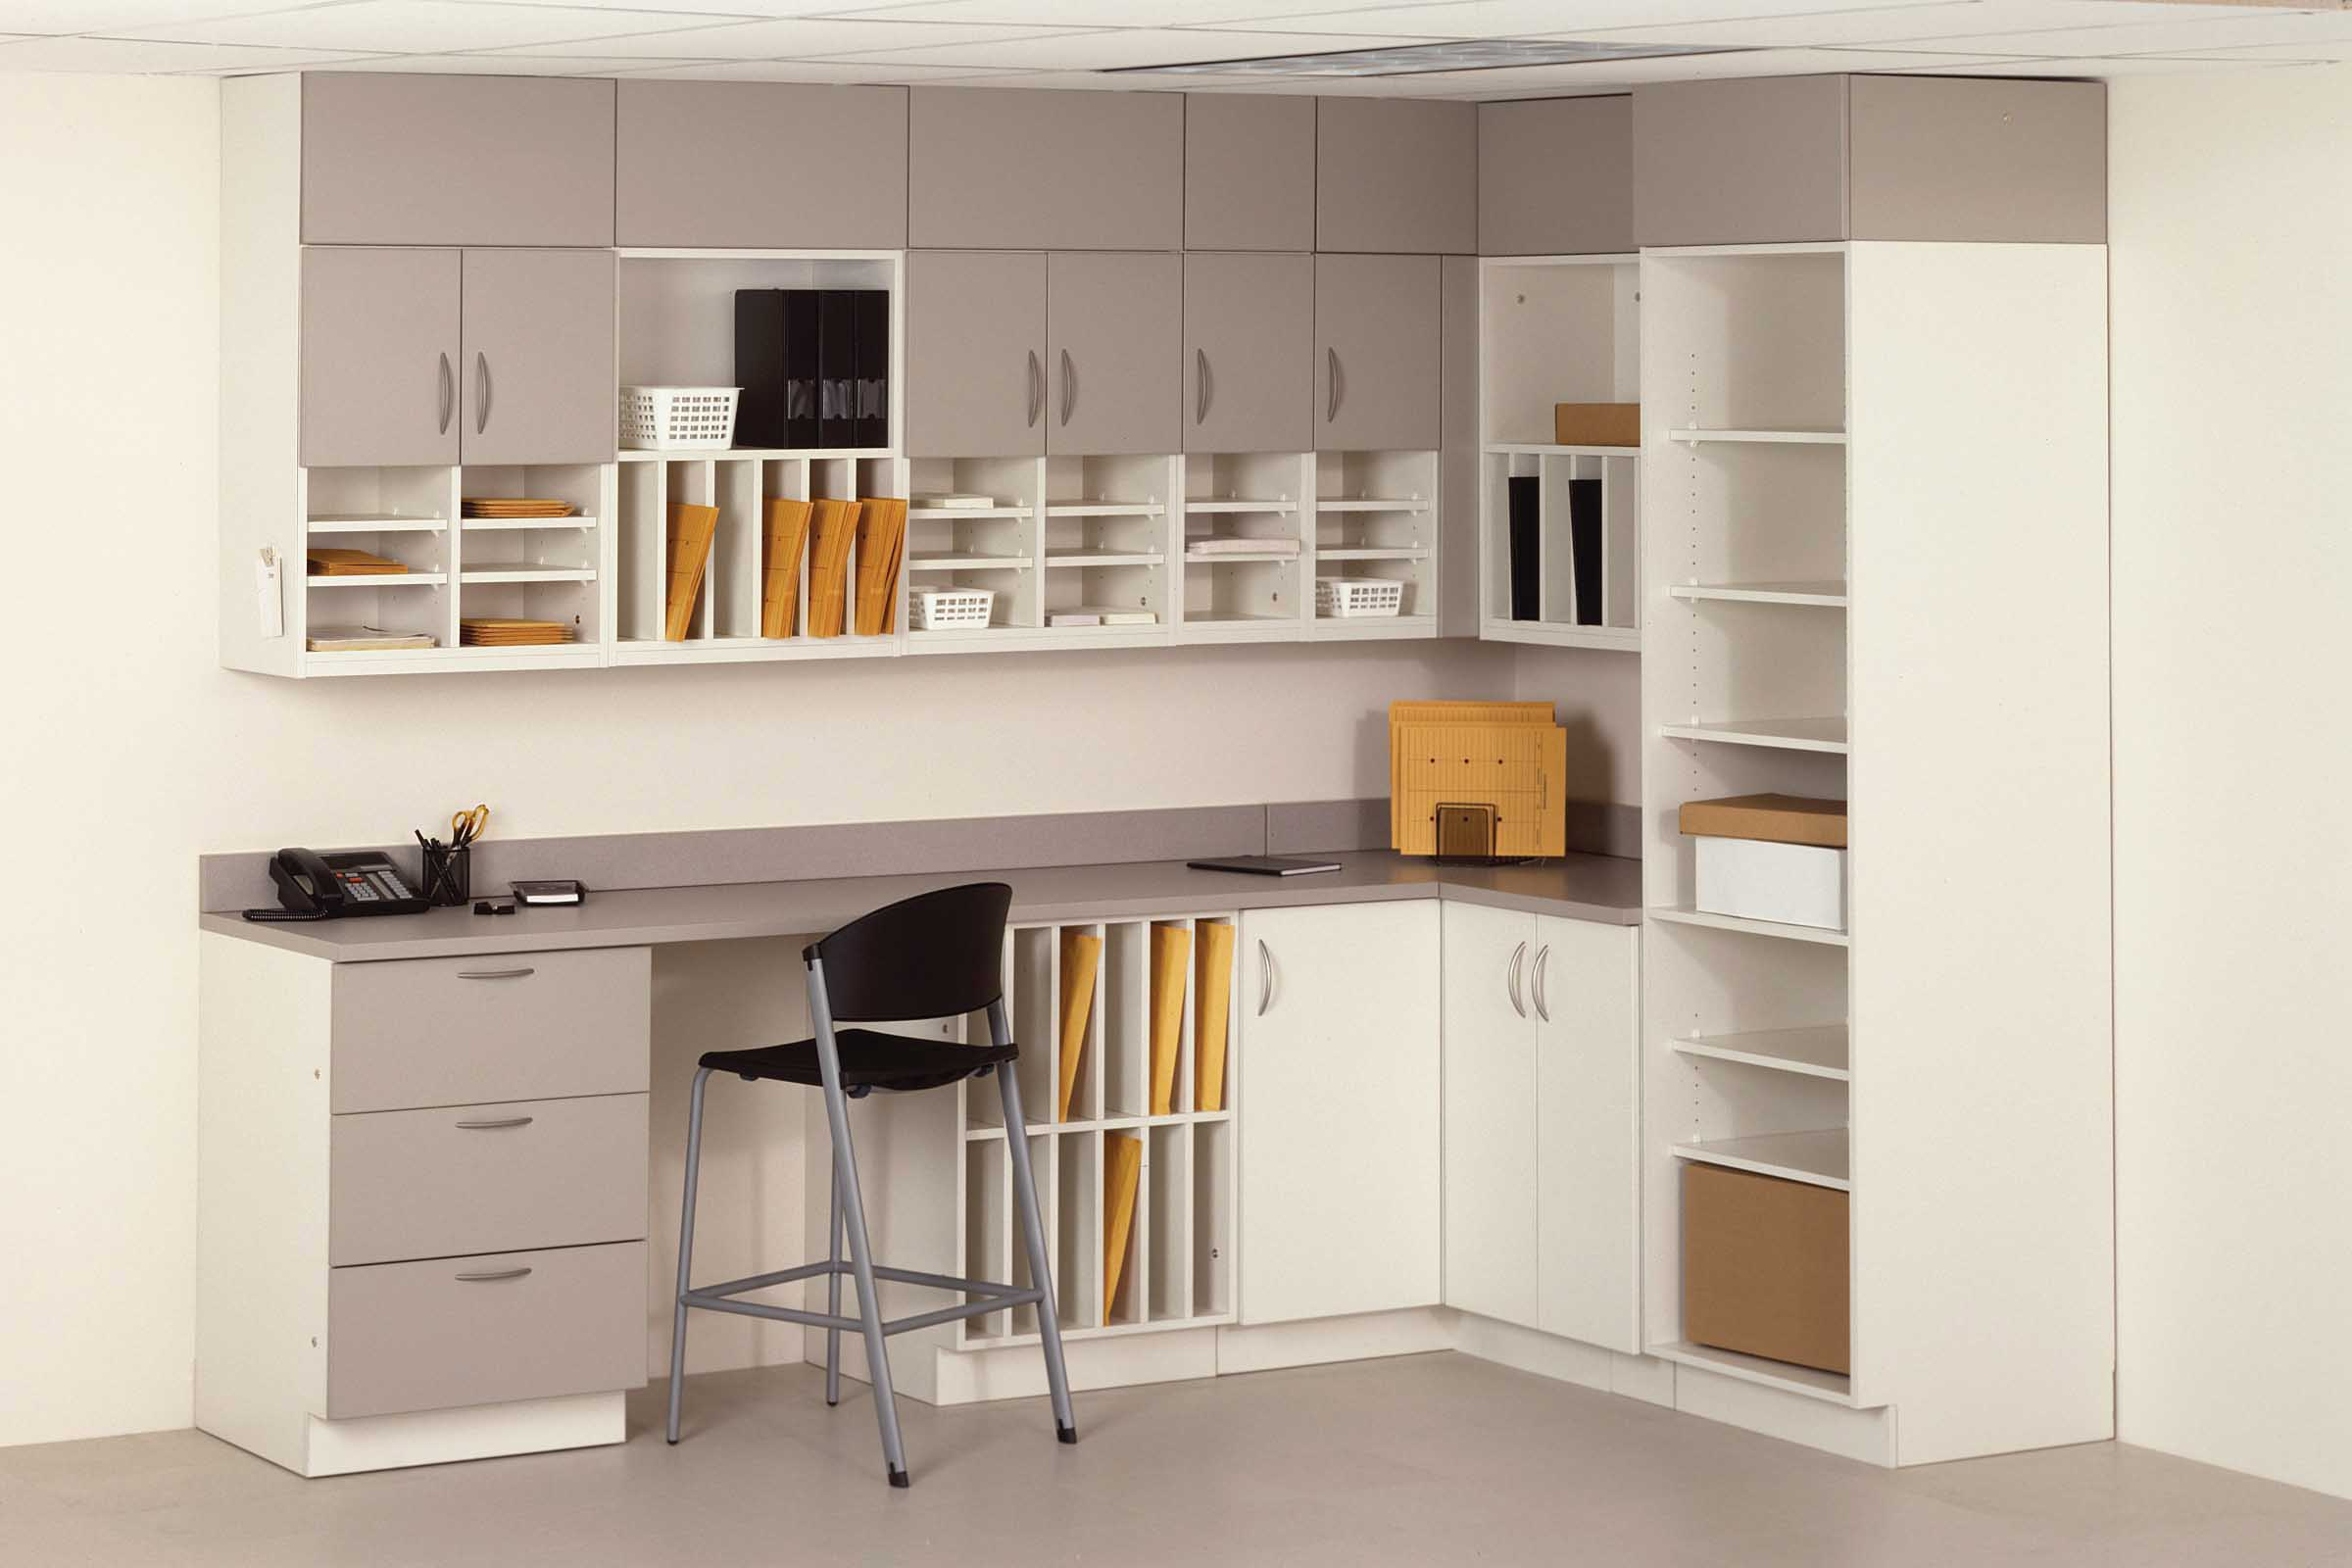 Image gallery modular cabinets for Prefab kitchen cabinets